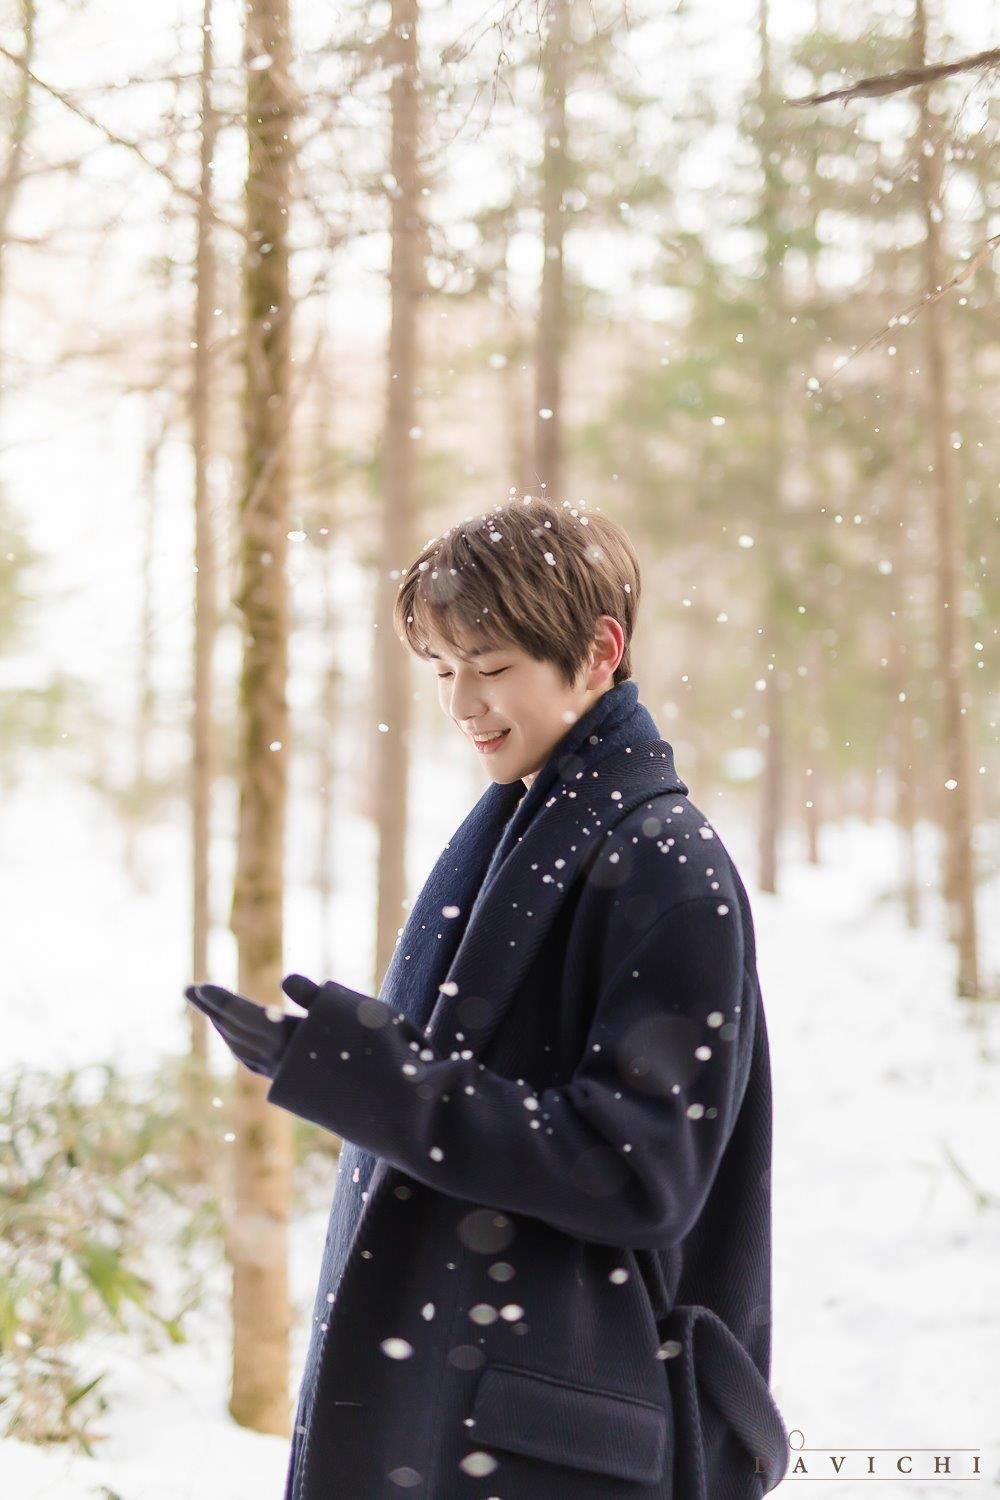 Photo )) Kang Daniel Takes You Behind The Scenes in The Making of DAVICHI 'Days Without You' • Kpopmap #kangdaniel